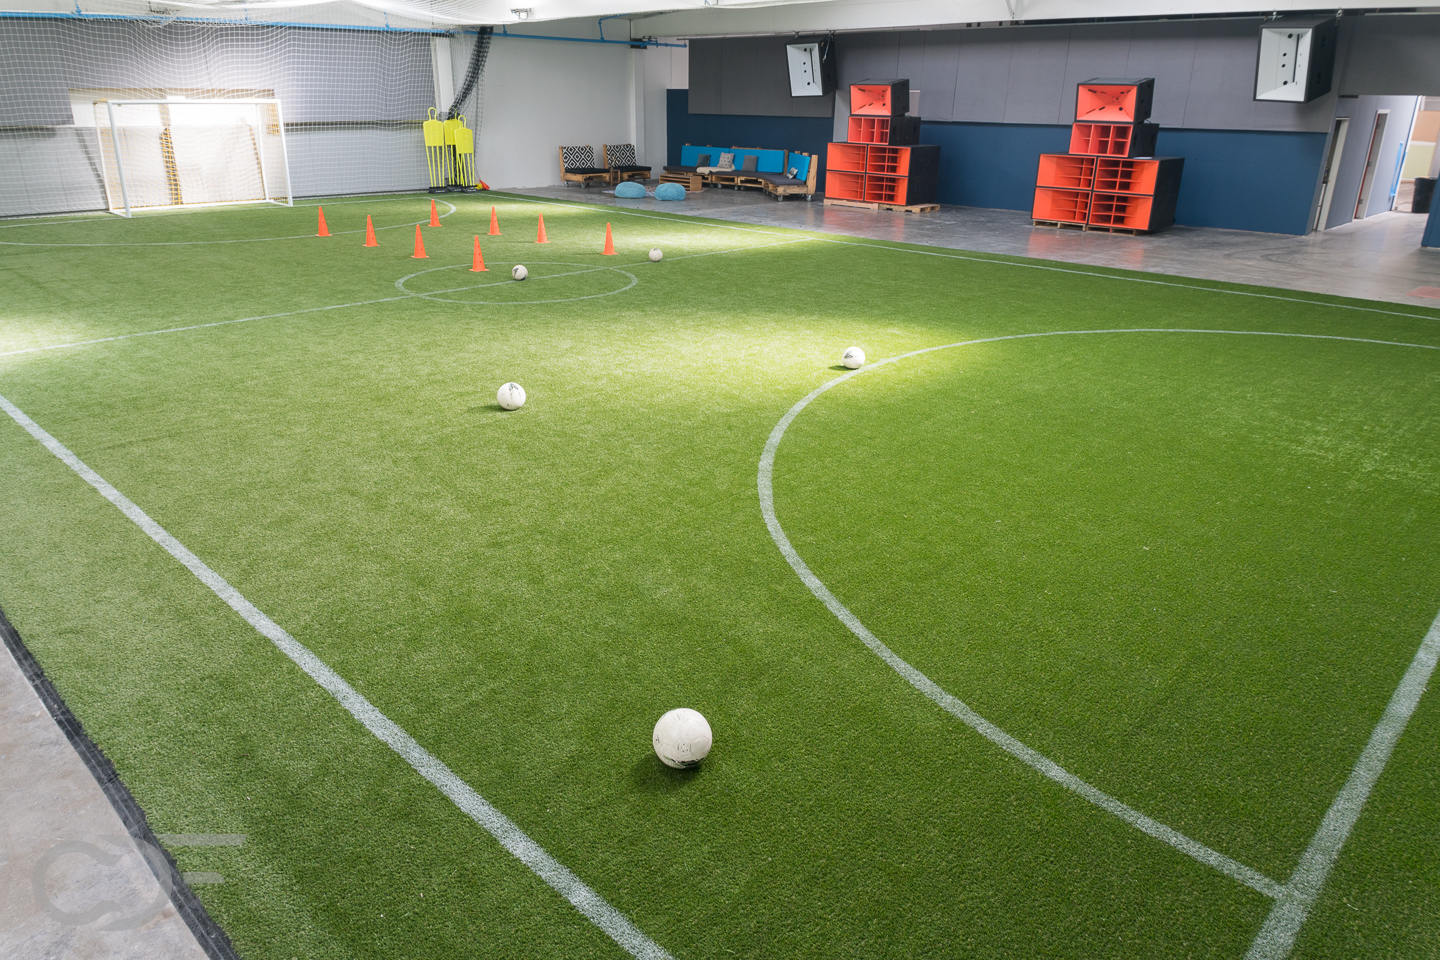 EVSA soccer pitch corner